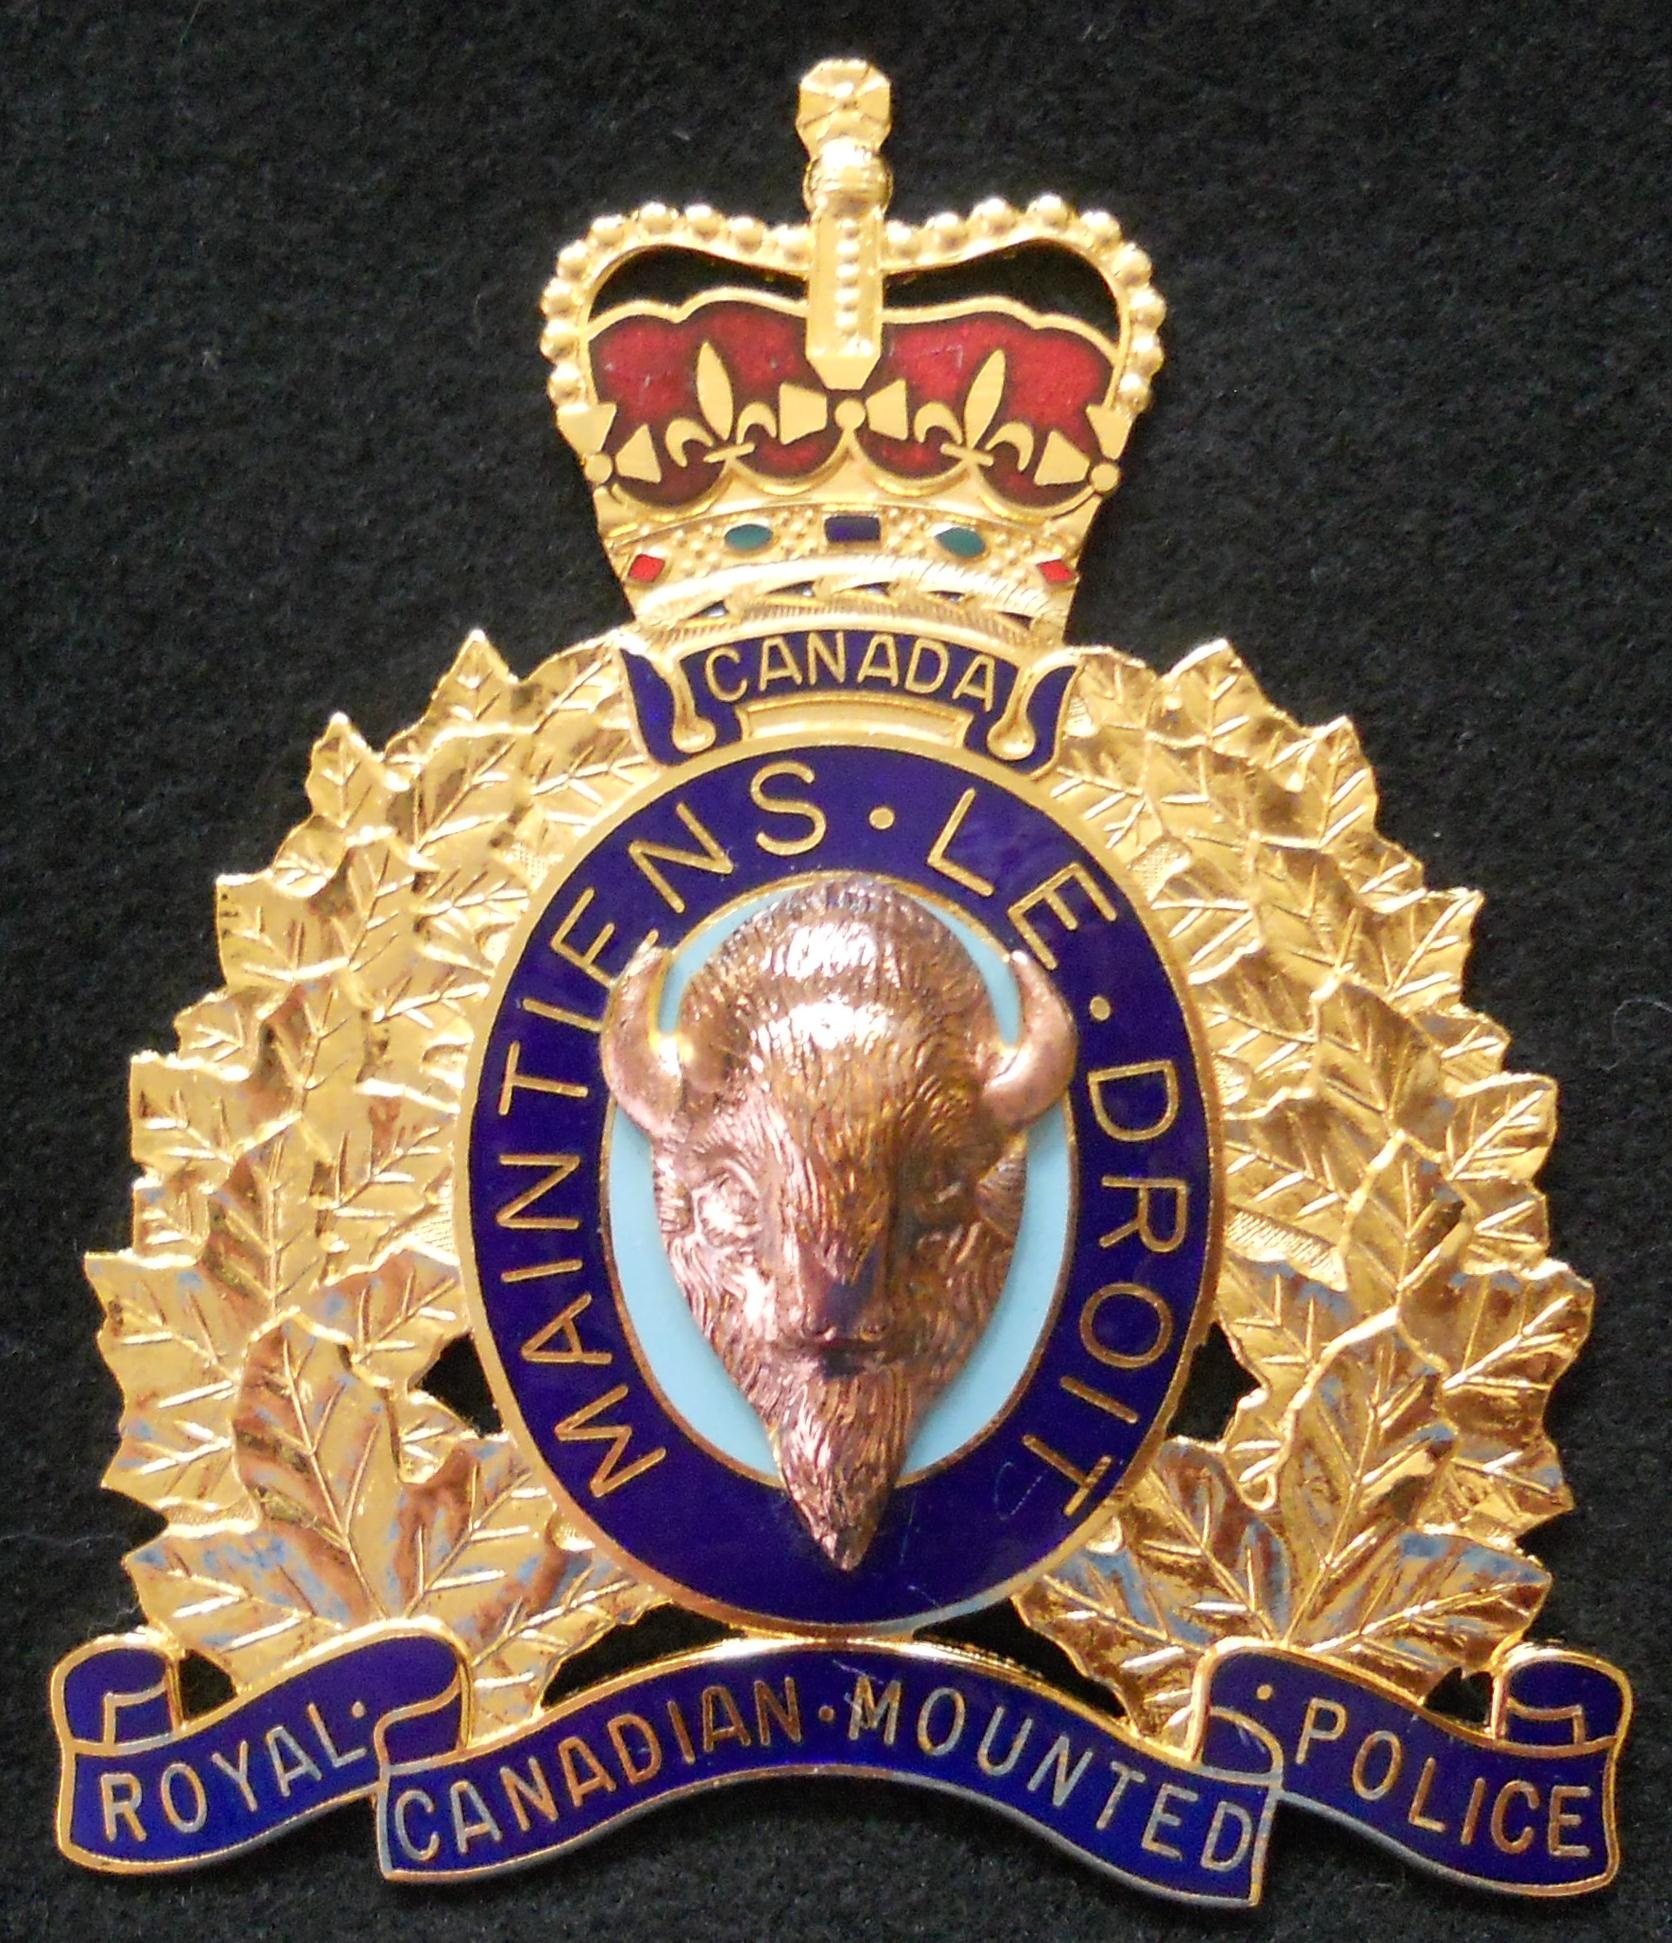 RCMP BELIEVE A SUSPICIOUS PACKAGE FOUND AT A TOWING COMPANY COMPOUND IN RED DEER--WAS A HOMEMADE EXPLOSIVE